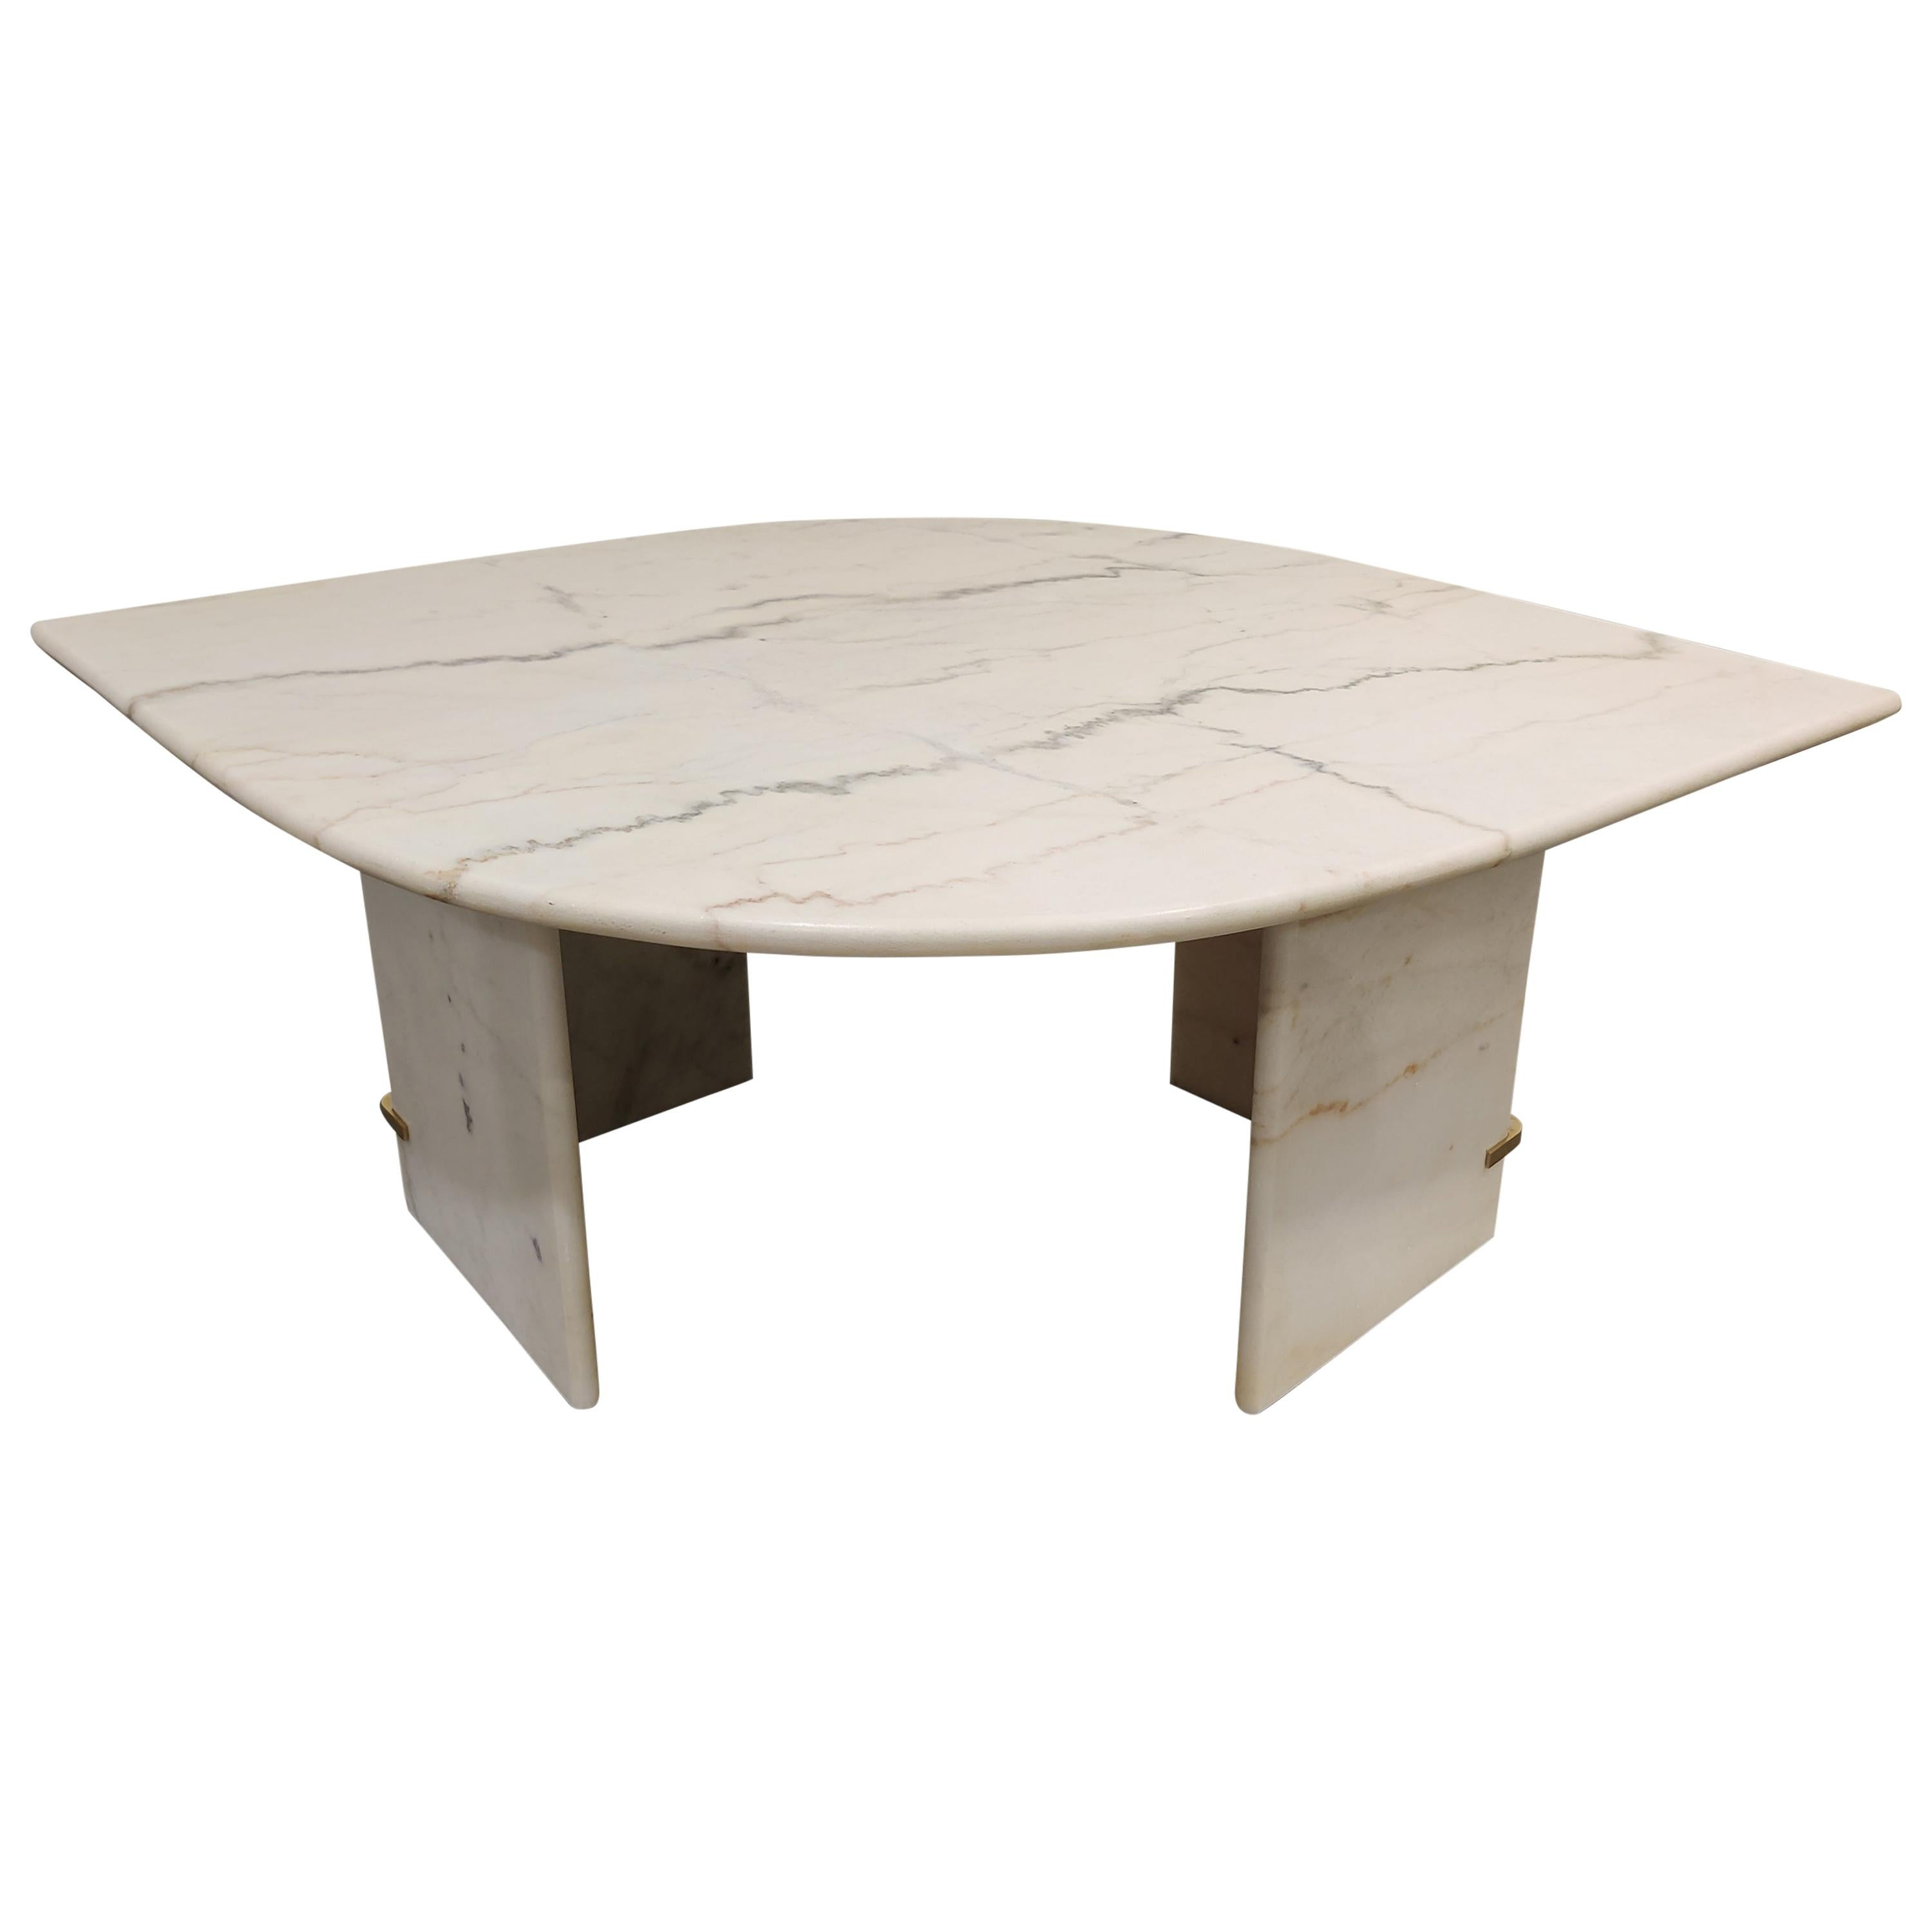 Vintage White Marble Coffee Table 1970s For Sale At 1stdibs